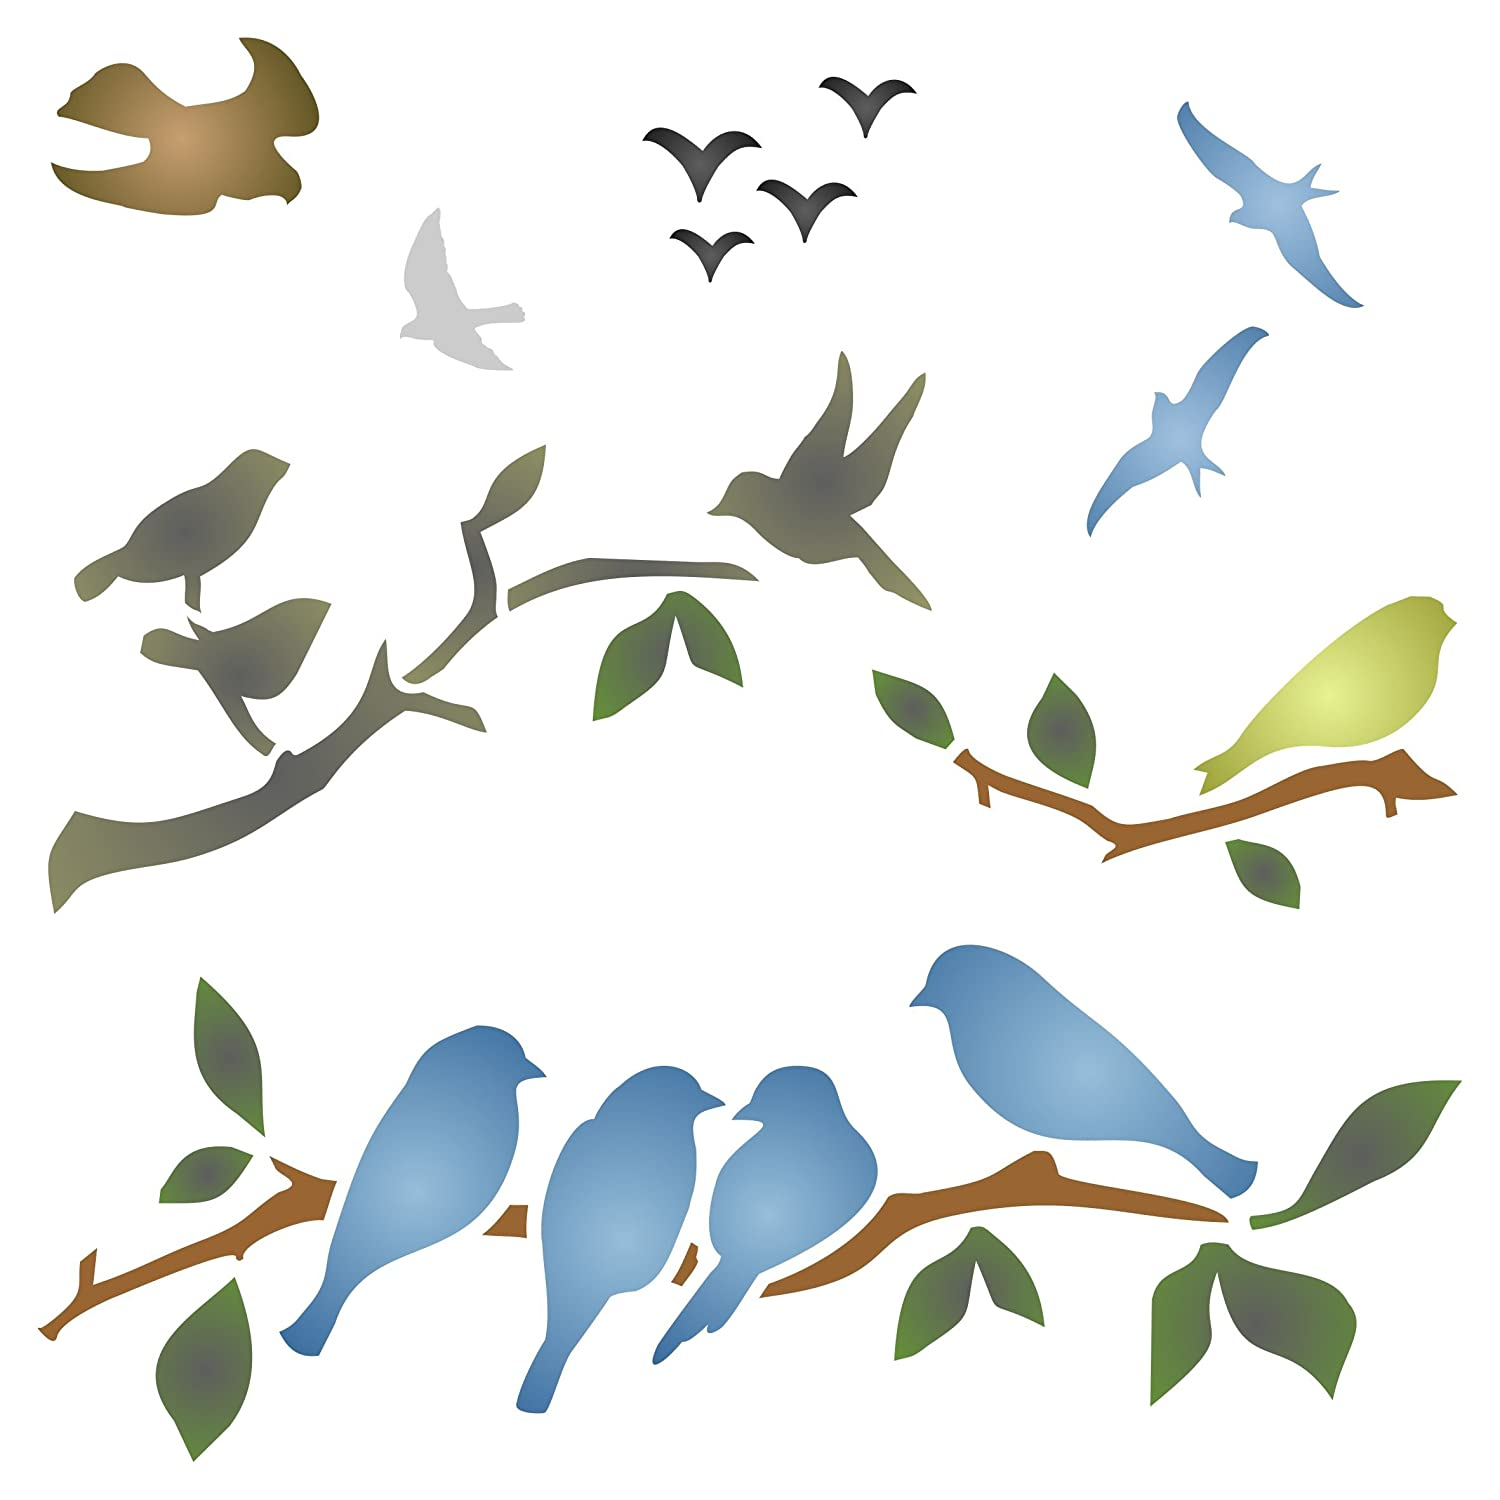 Birds On Branches Stencil - 16.5 x 16.5cm (M) - Reusable Bird Branch Silhouette Wall Stencil Template - Use on Paper Projects Scrapbook Bullet Journal Walls Floors Fabric Furniture Glass Wood etc. Stencil Company